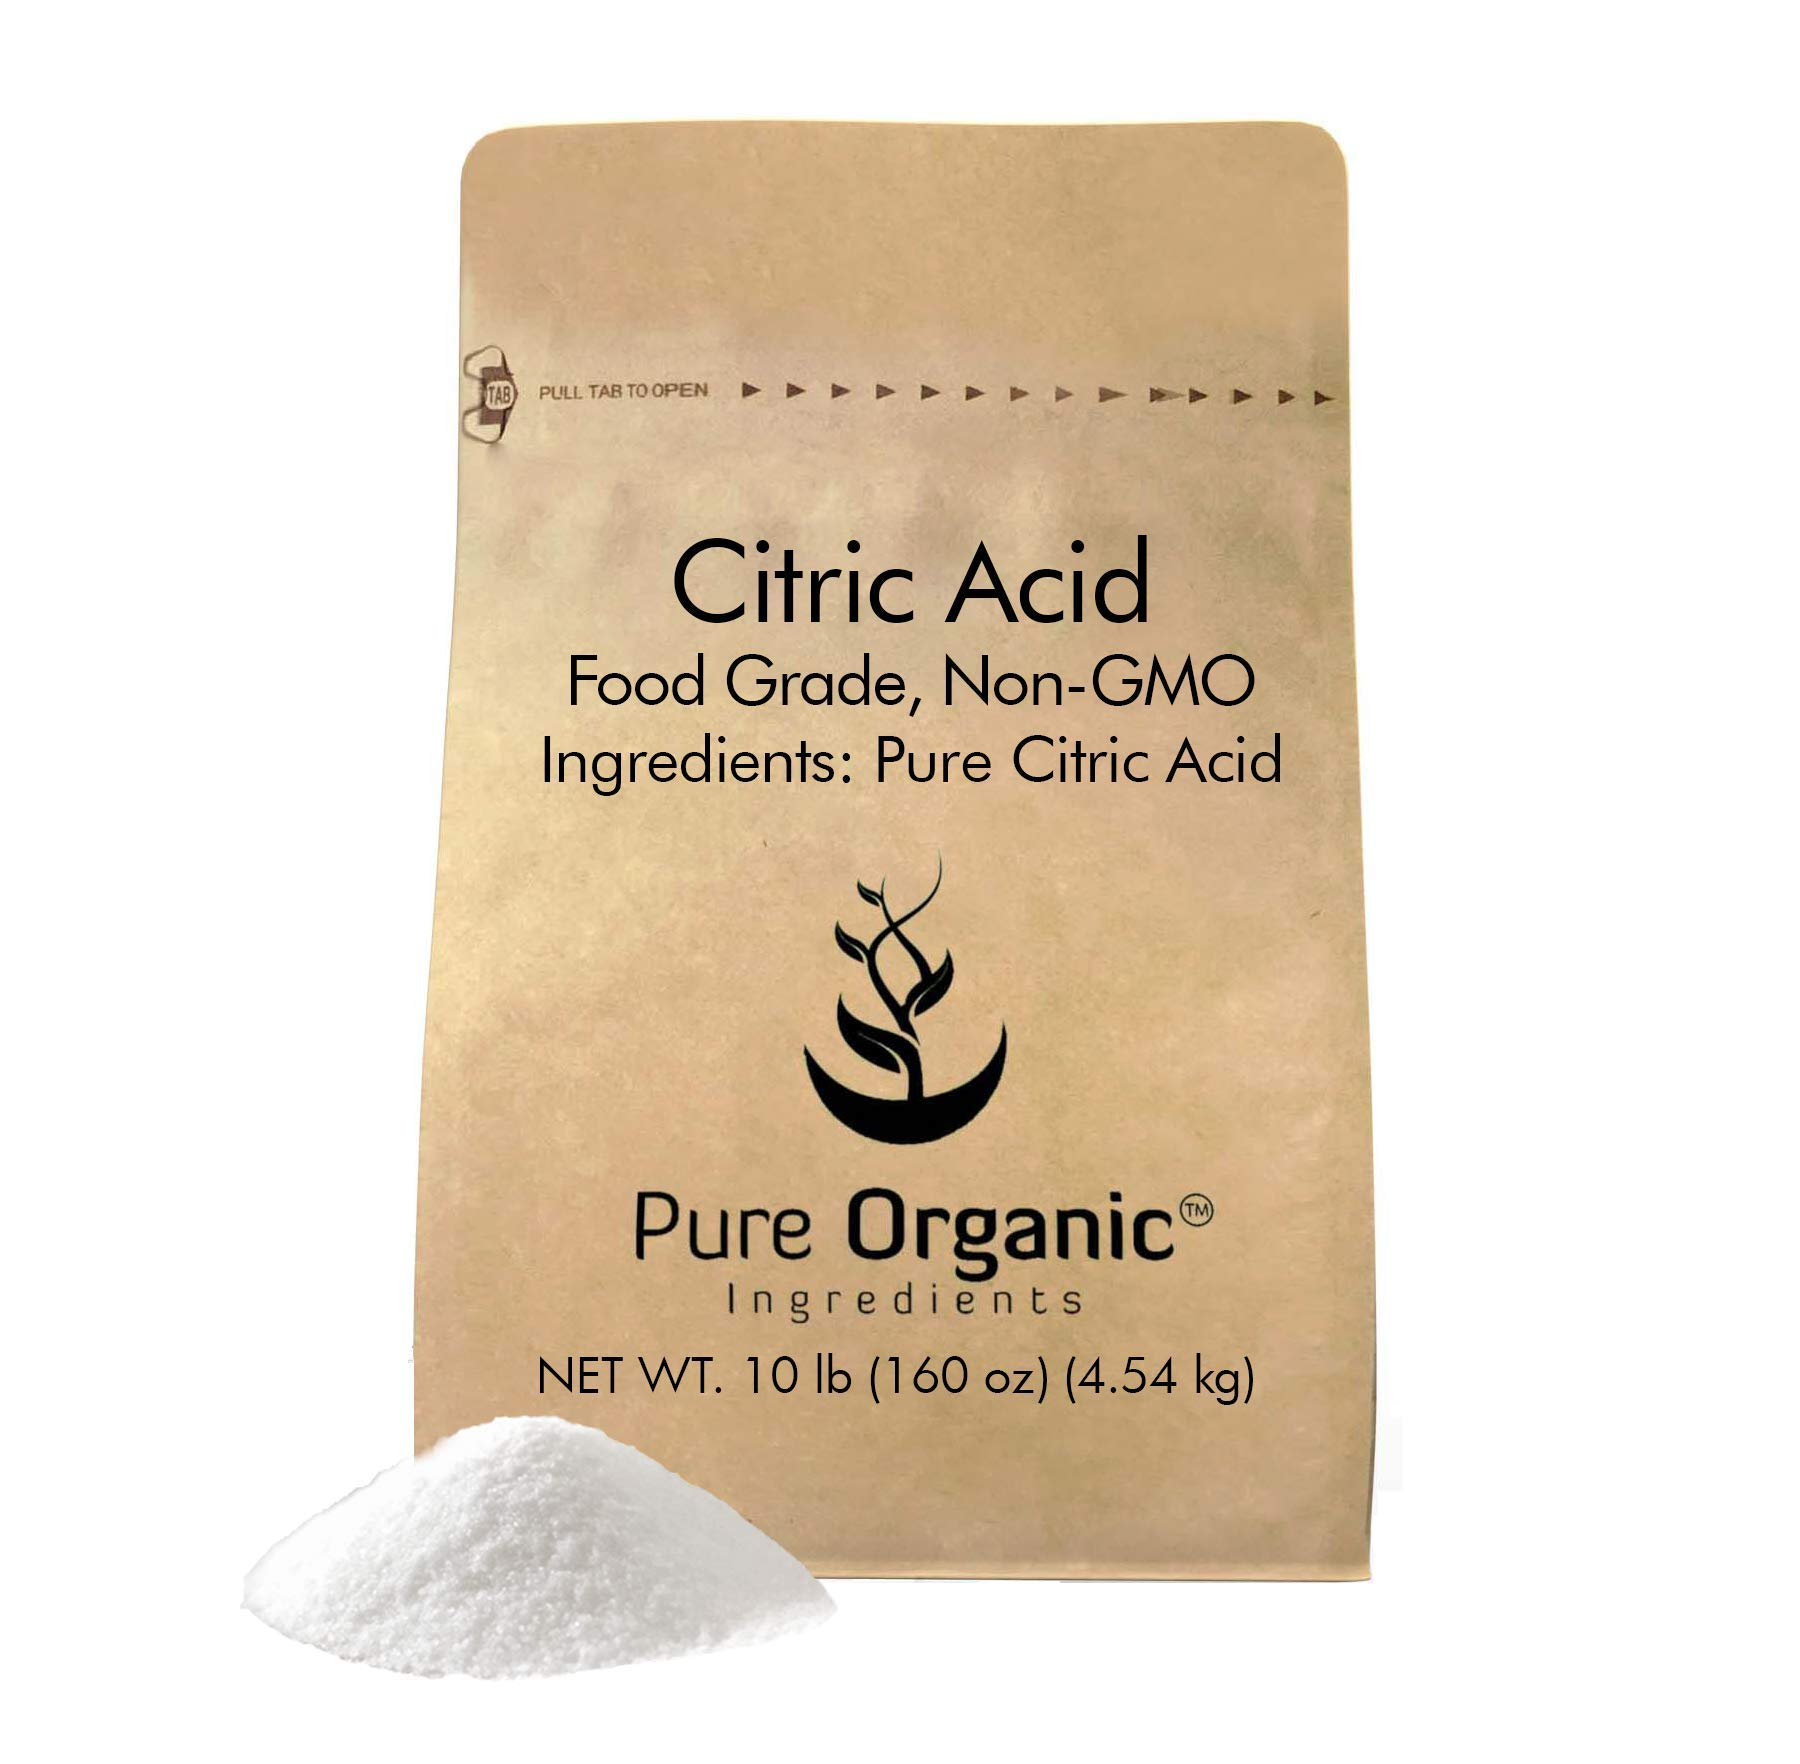 Citric Acid (10 lb.) by Pure Organic Ingredients, Eco-Friendly Packaging, All-Natural, Highest Quality, Pure, Food Grade, Non-GMO (also available in 4 oz, 11 oz, 1 lb, 2 lb, 5 lb, 50 lb)